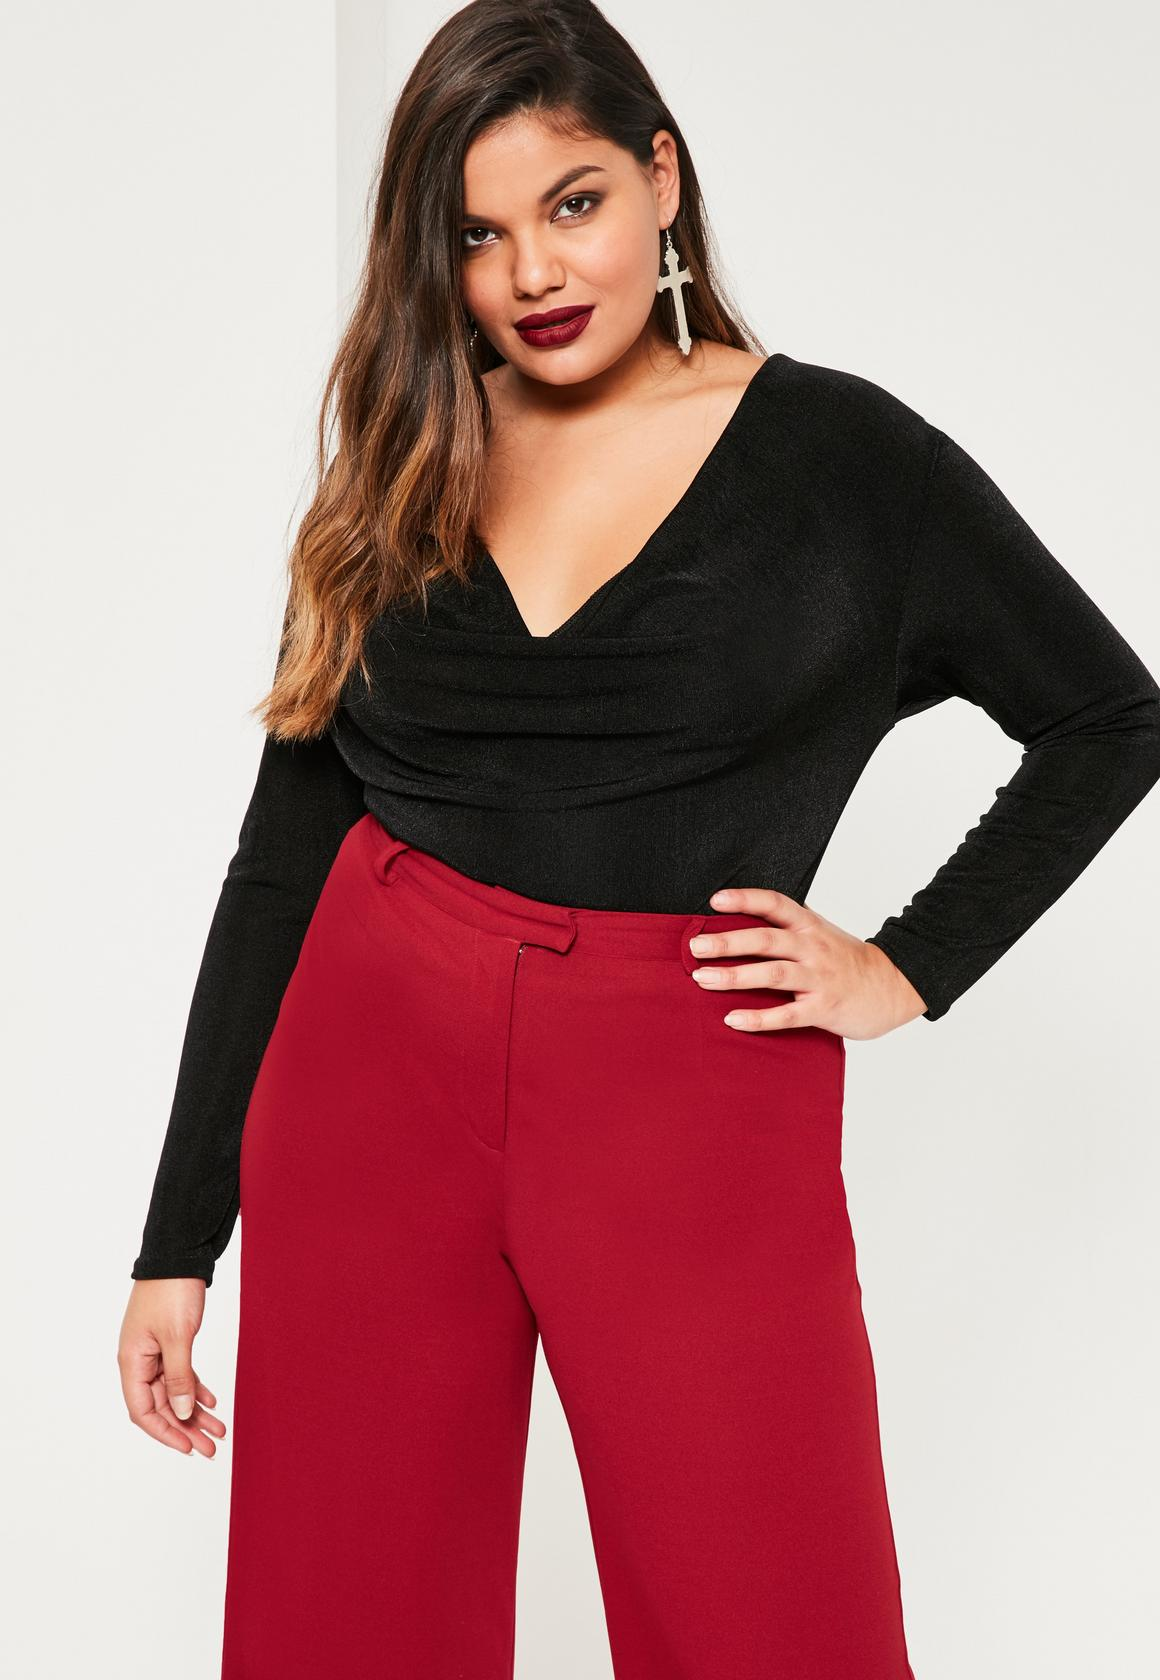 Plus Size Bodysuit Selection Guidelines